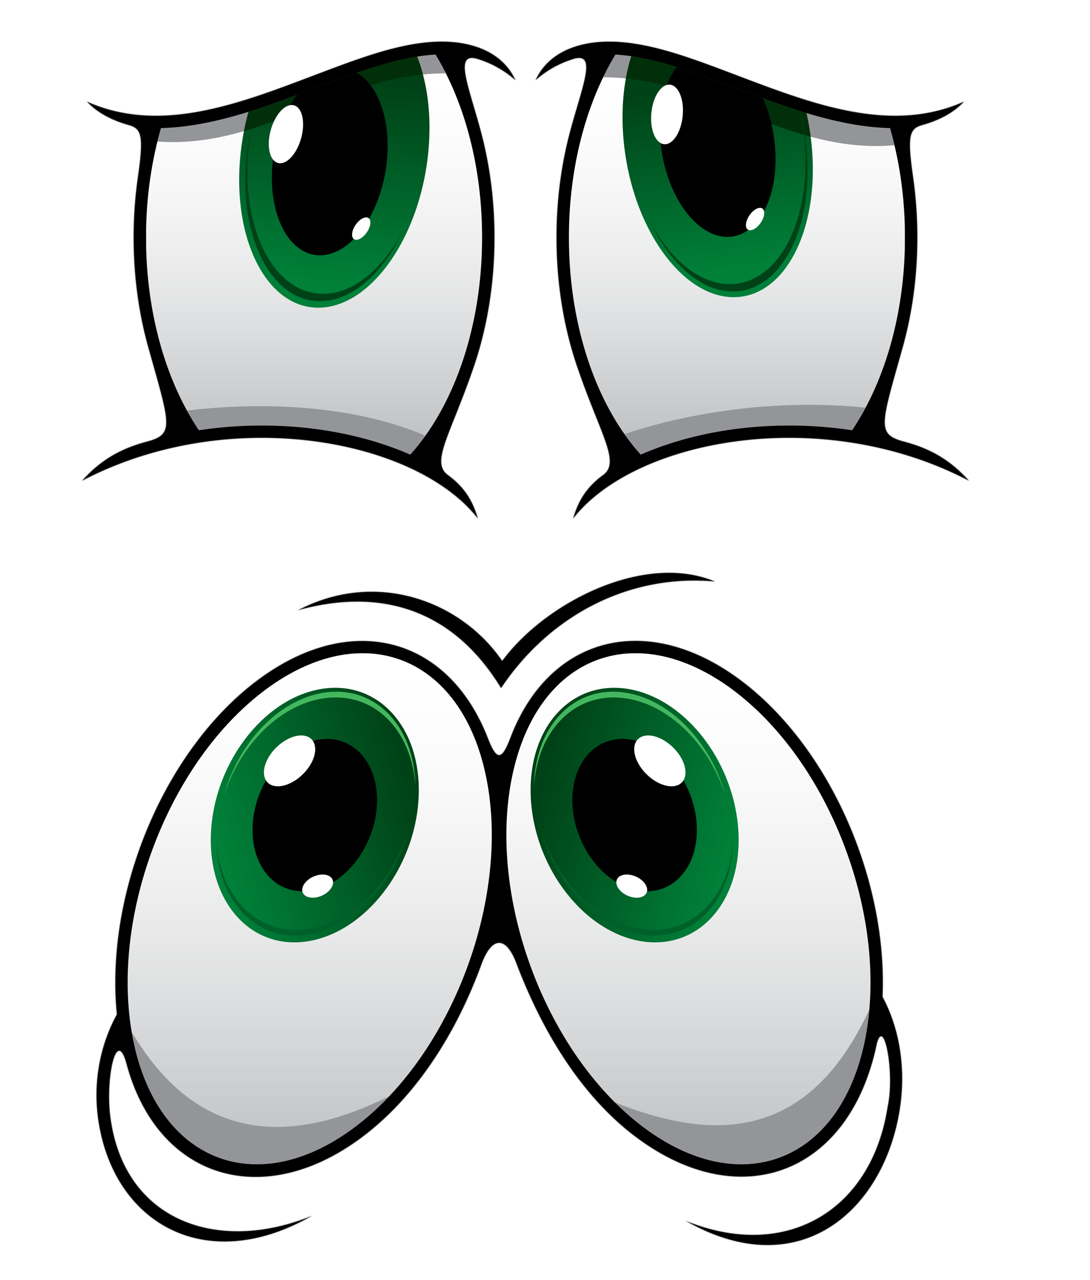 Clipart man with money eyes svg freeuse stock 8.png | Pinterest | Anime eyes, Clip art and Album svg freeuse stock